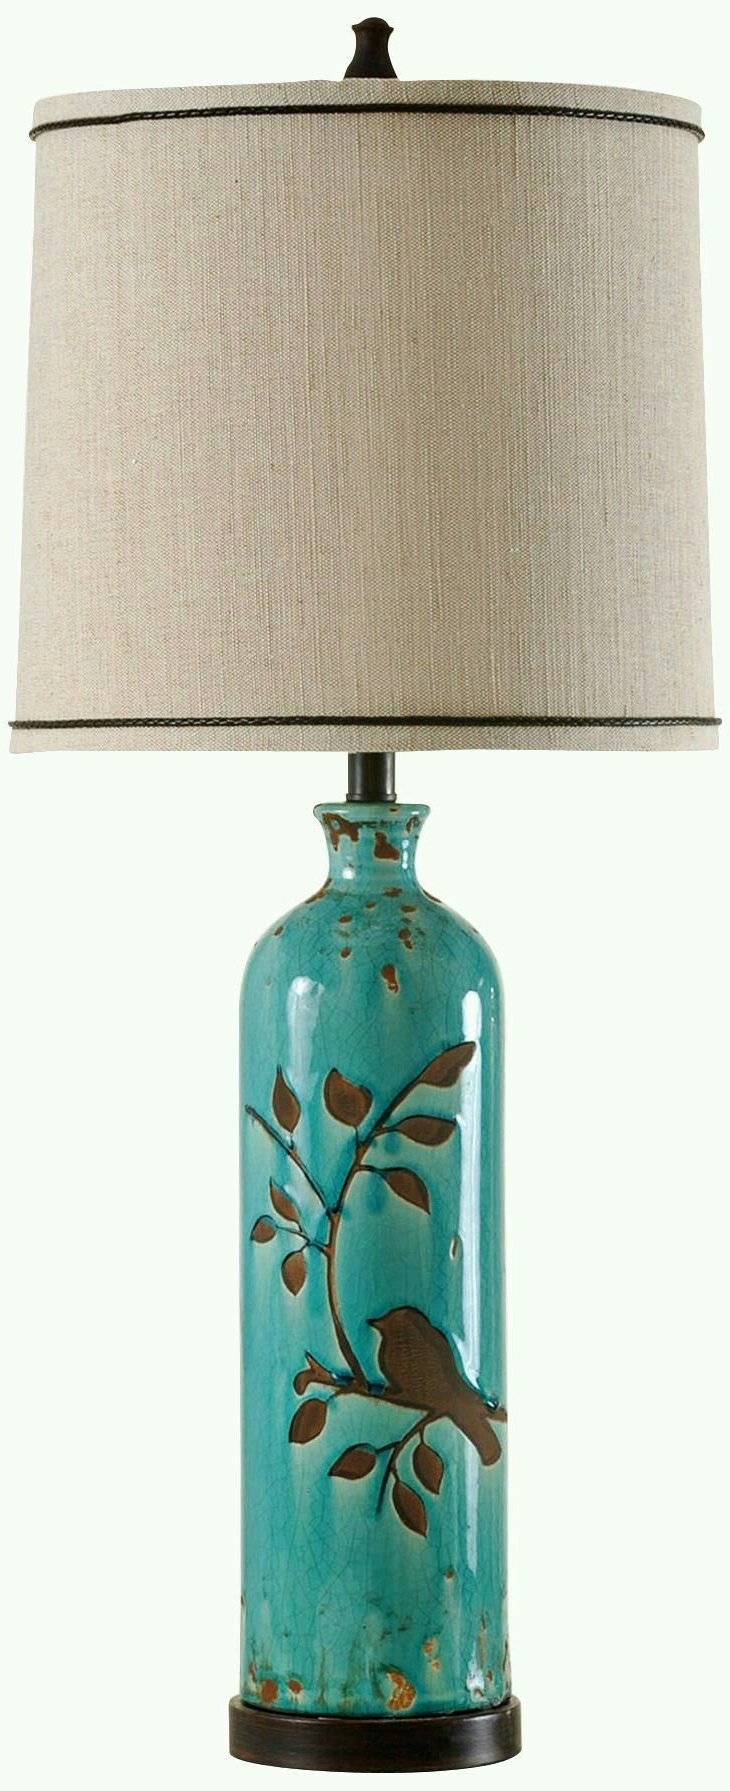 Ceramic Living Room Table Lamps Inside Most Up To Date Pinguzin Oz On Iki (View 7 of 15)